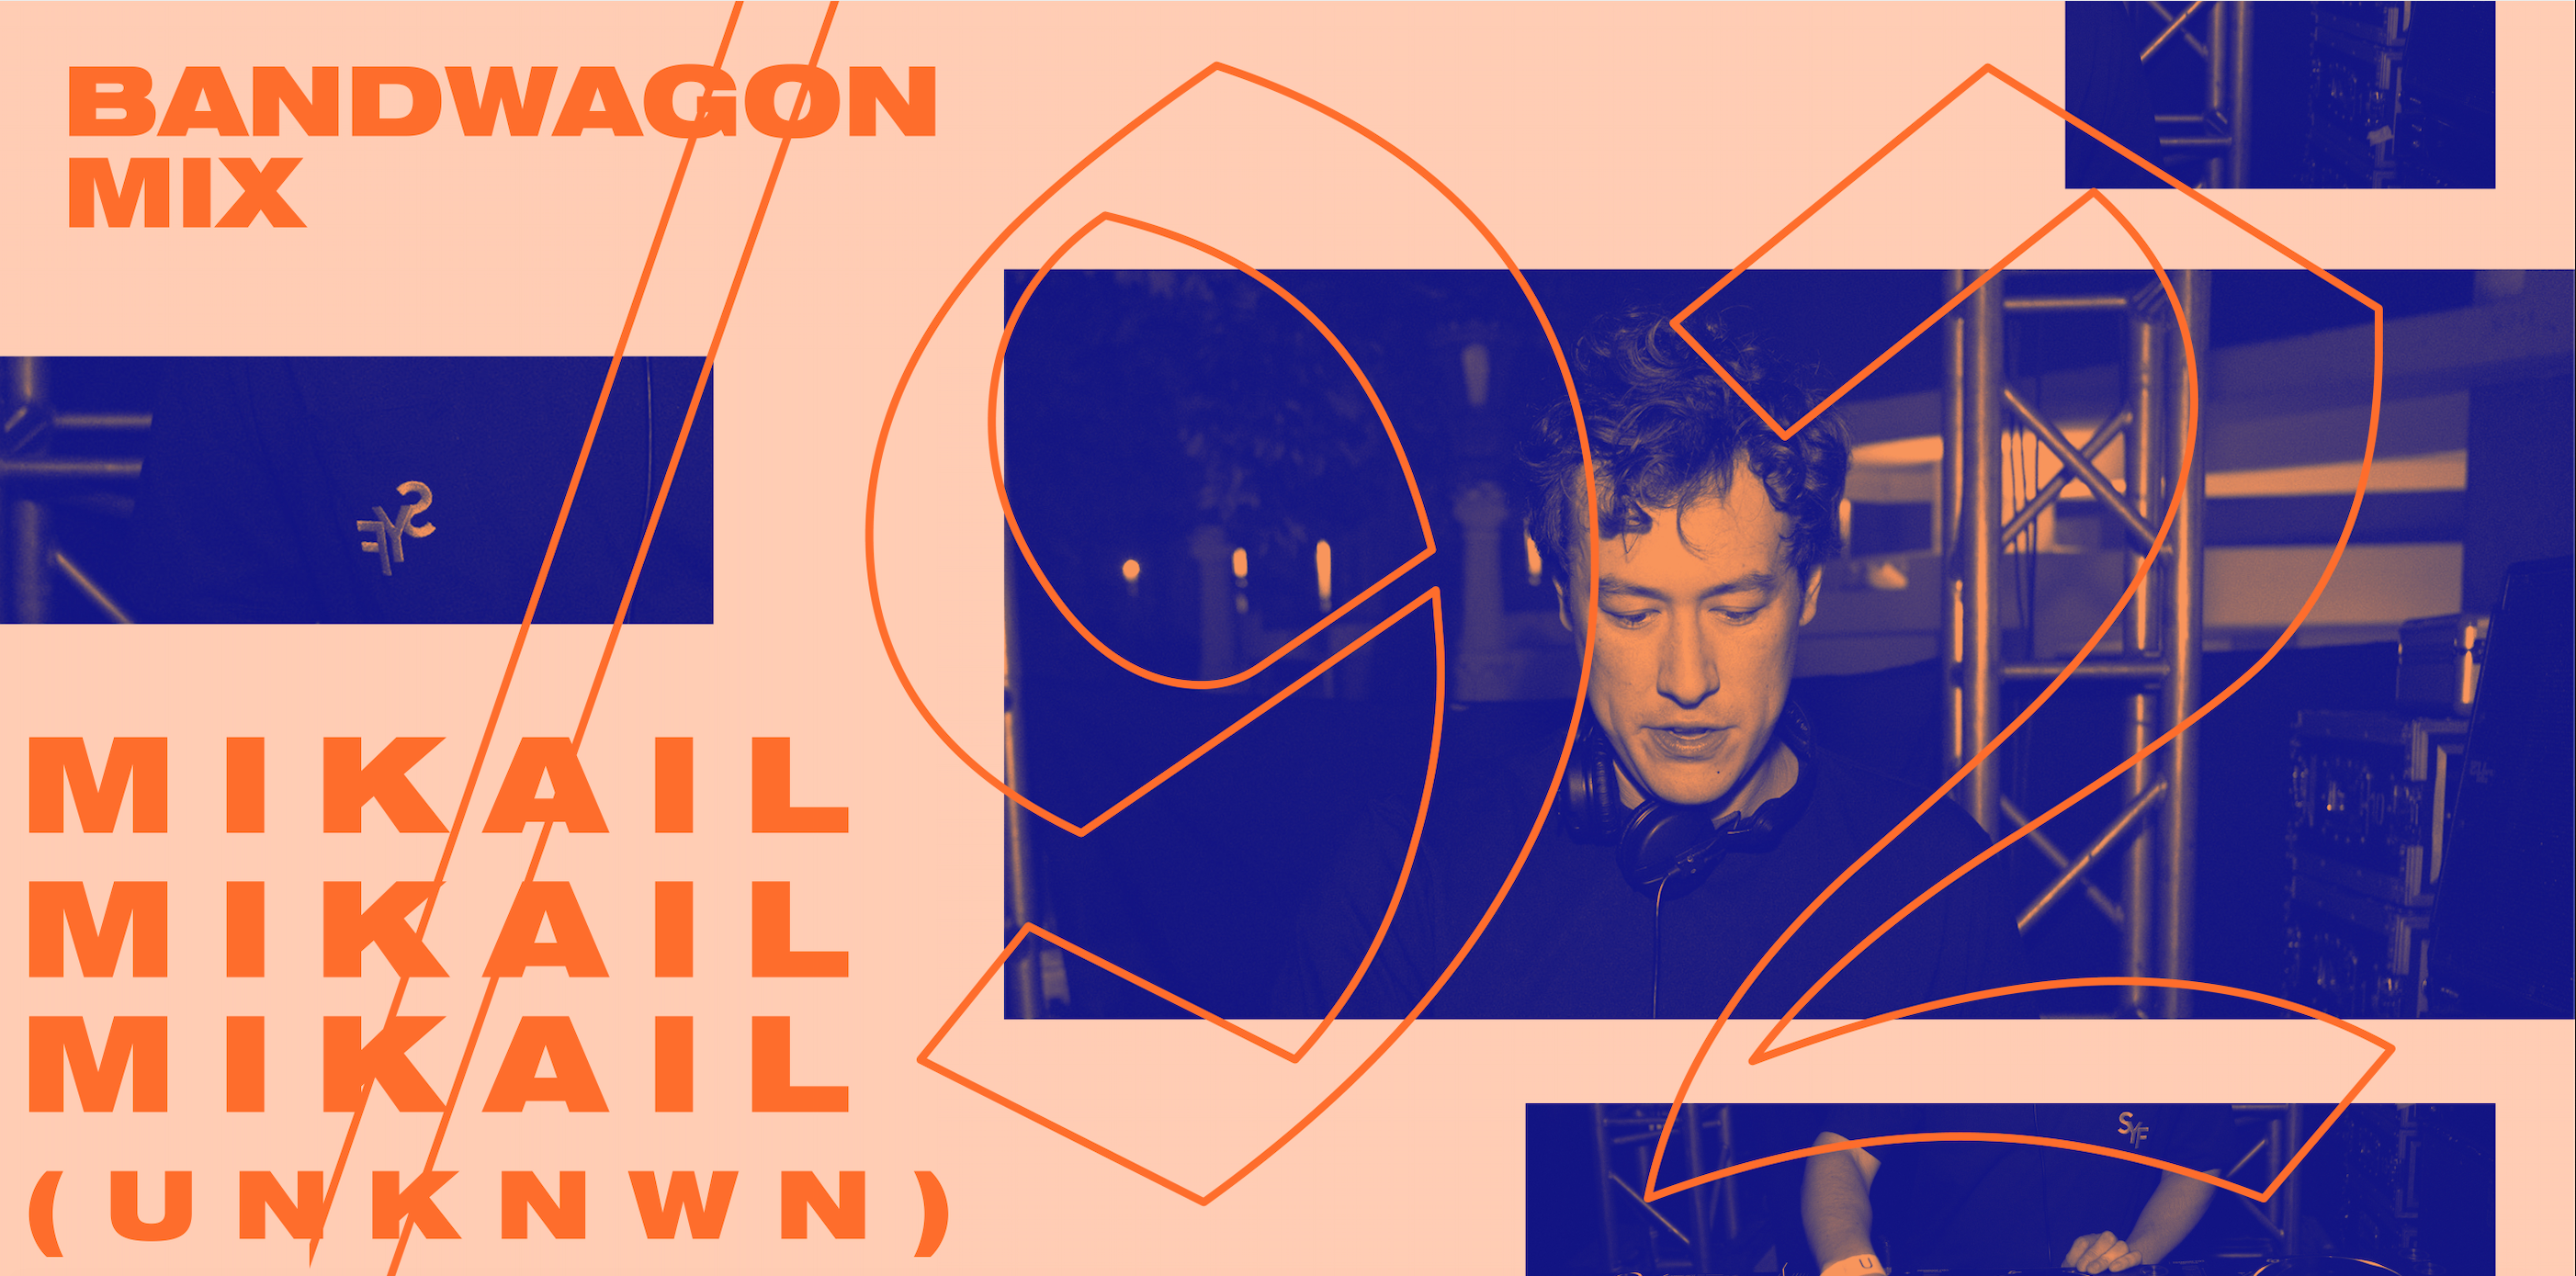 Bandwagon Mix #92: Mikail (UNKNWN)